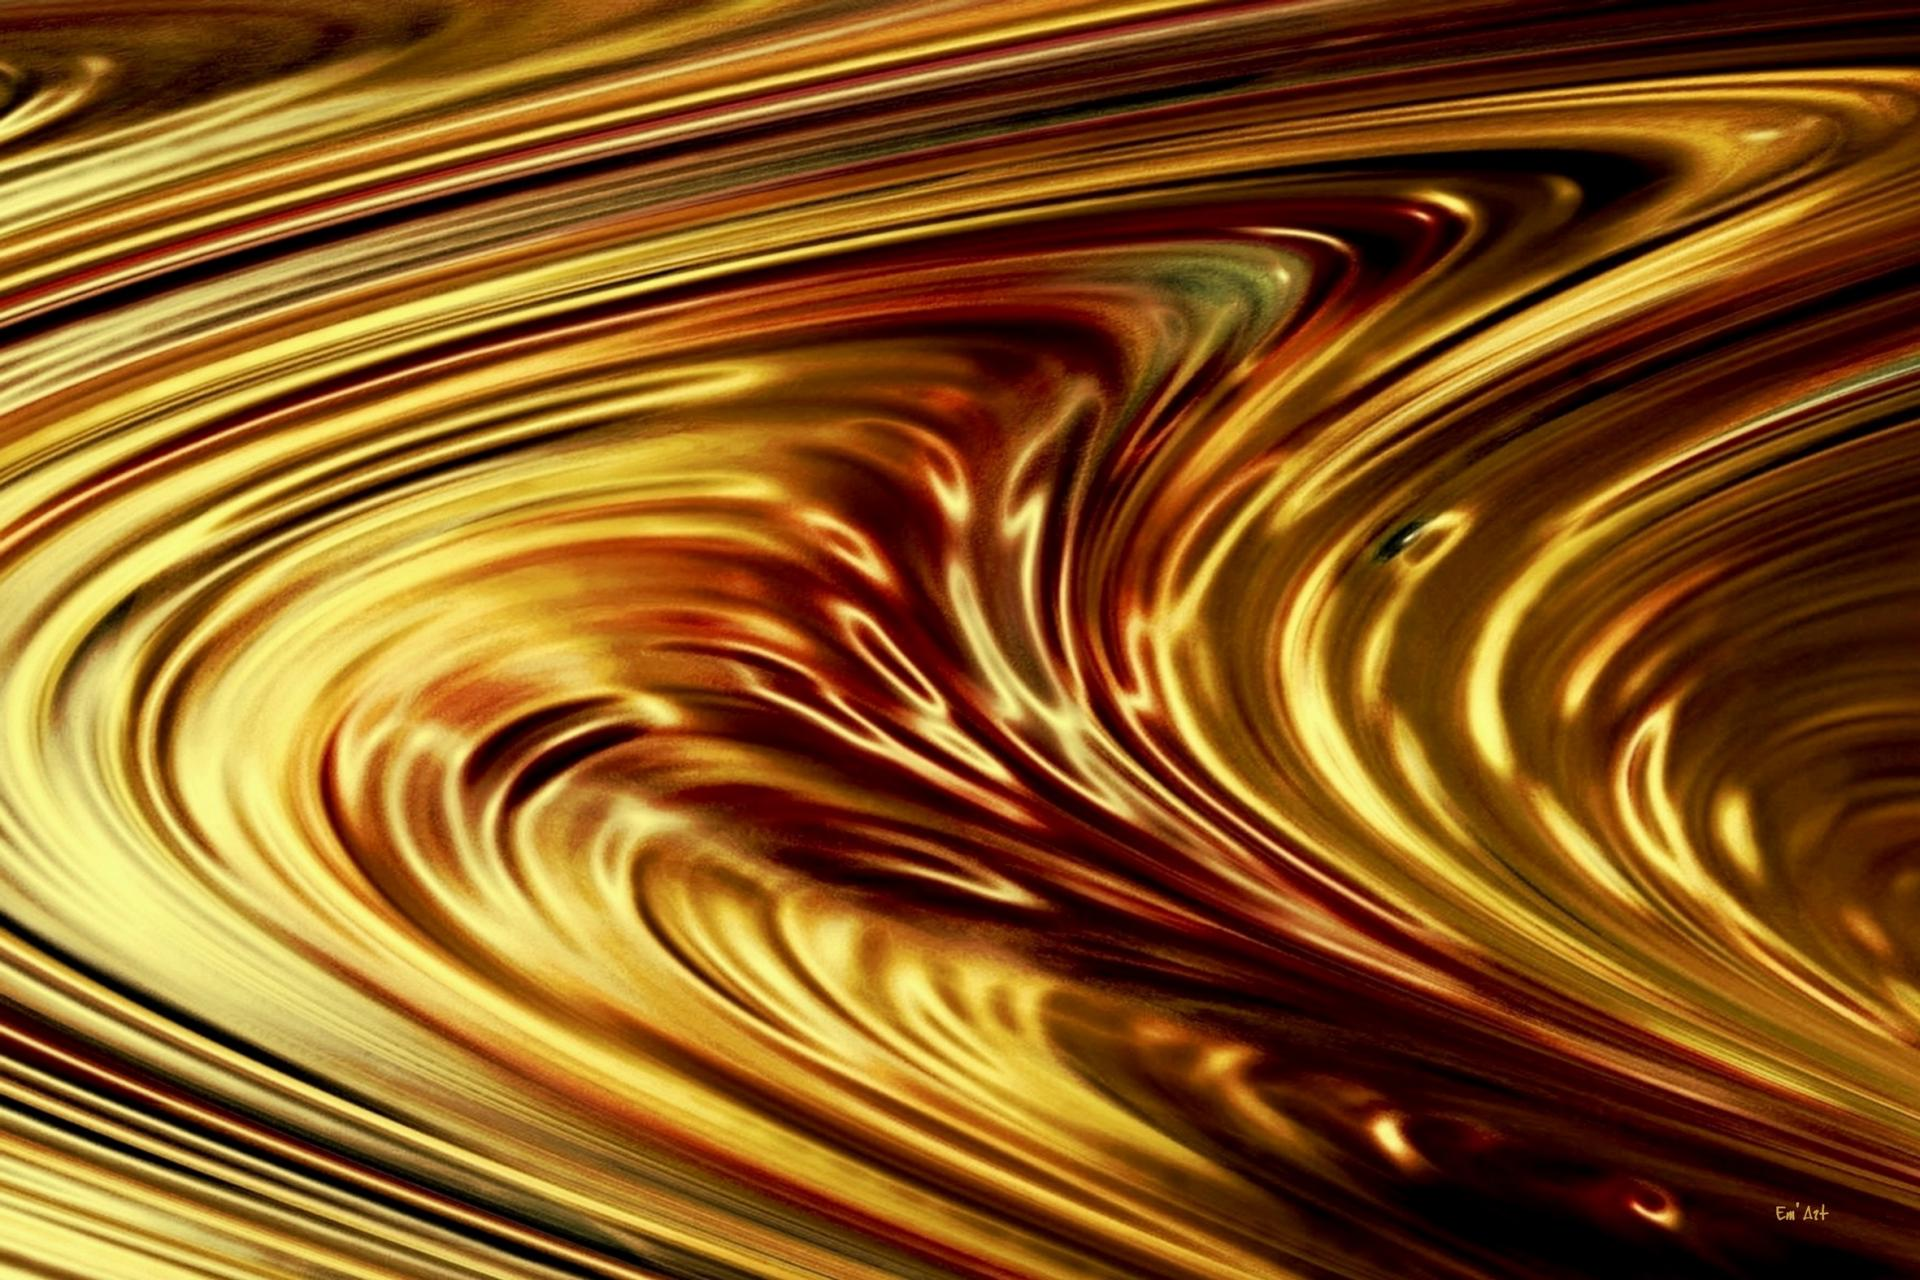 Golden flow II